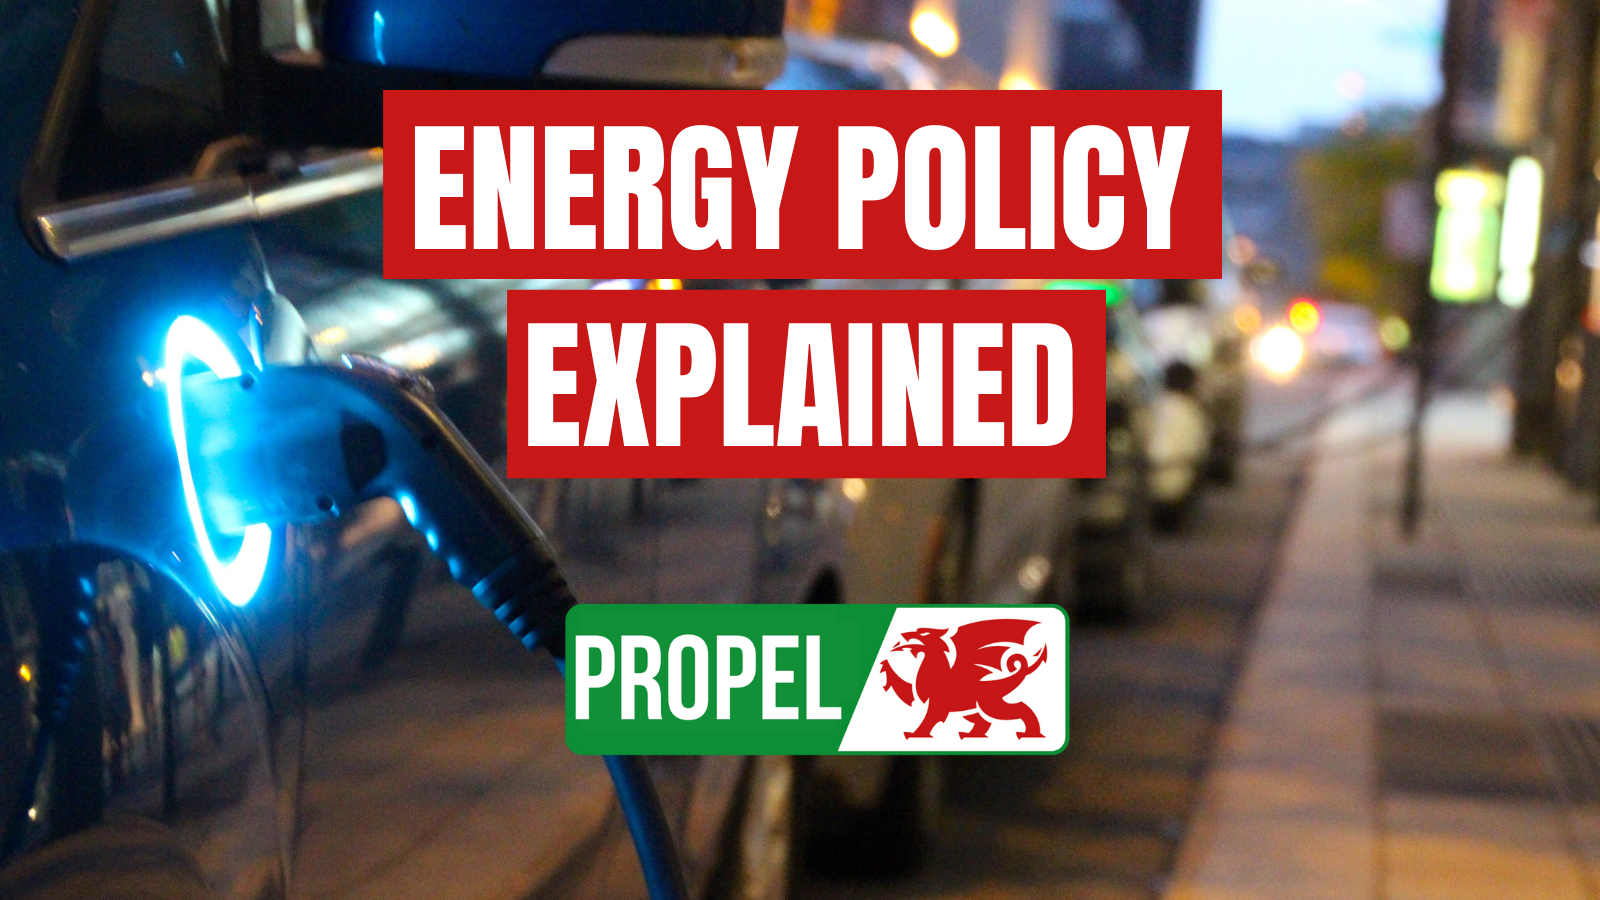 Propel - energy policy explained